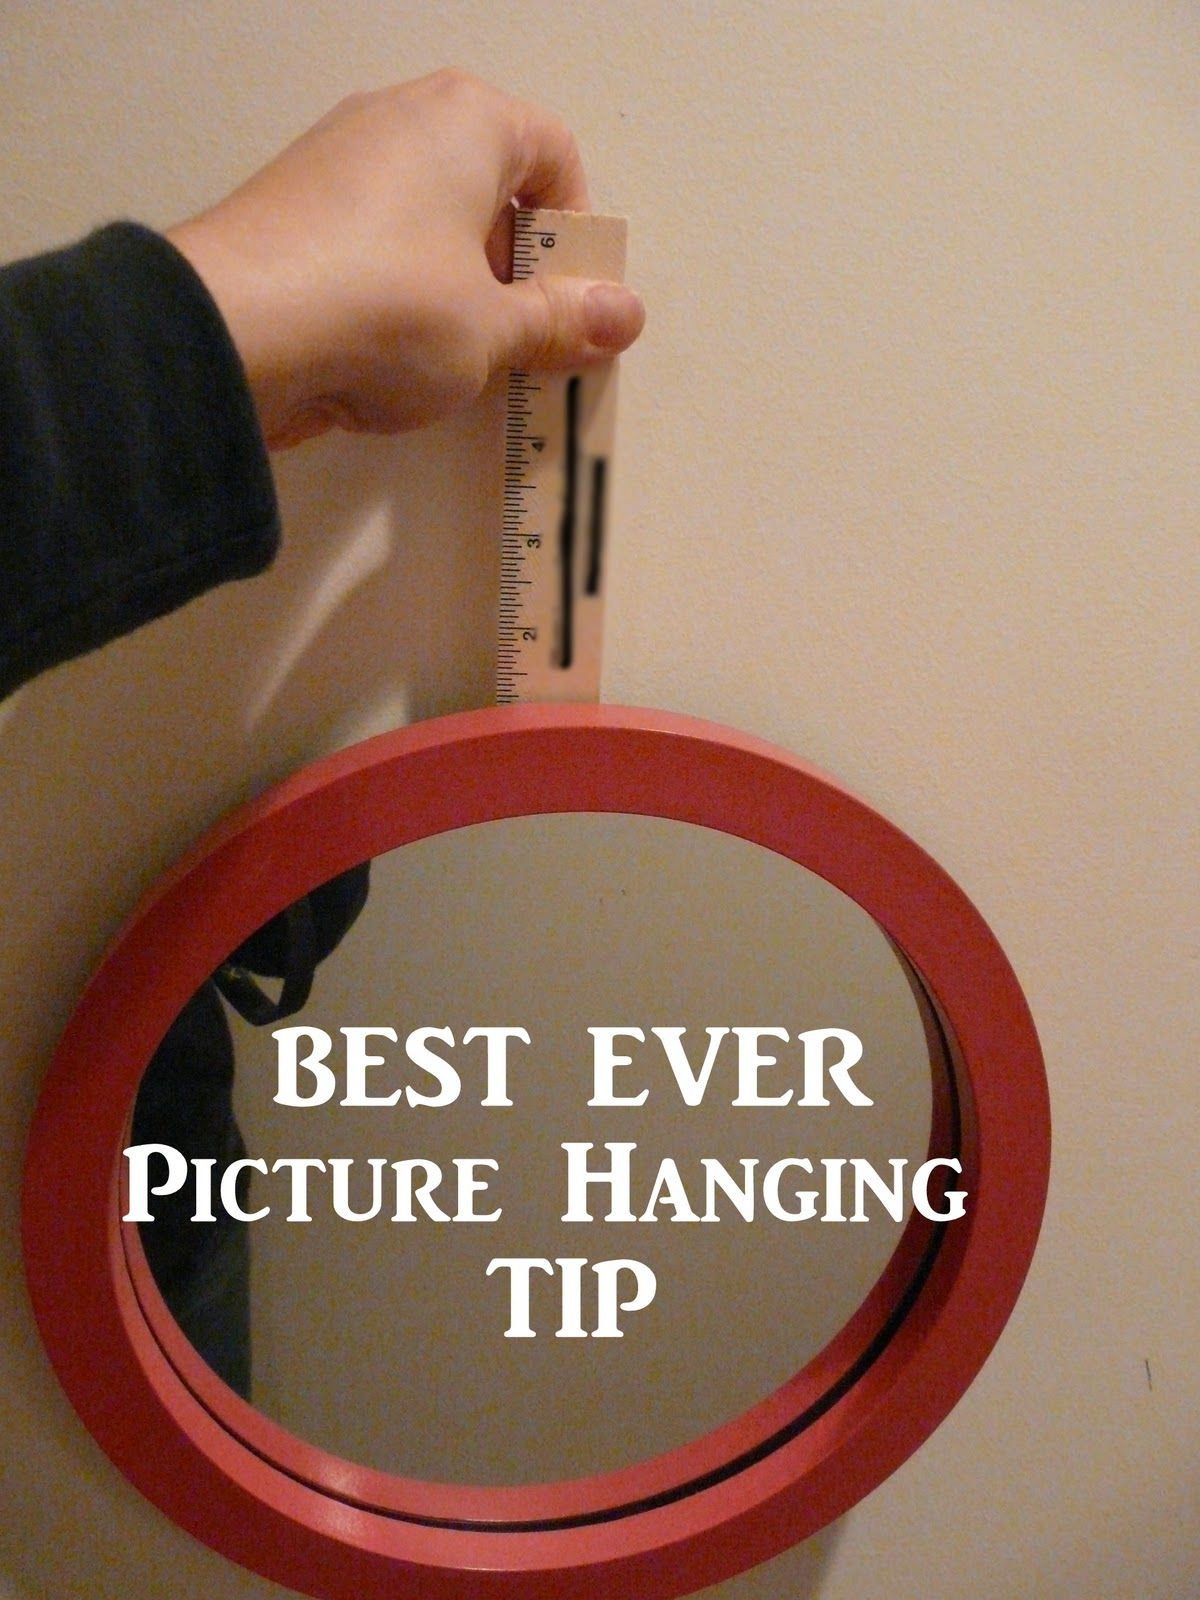 Picture hanging tip, genius!